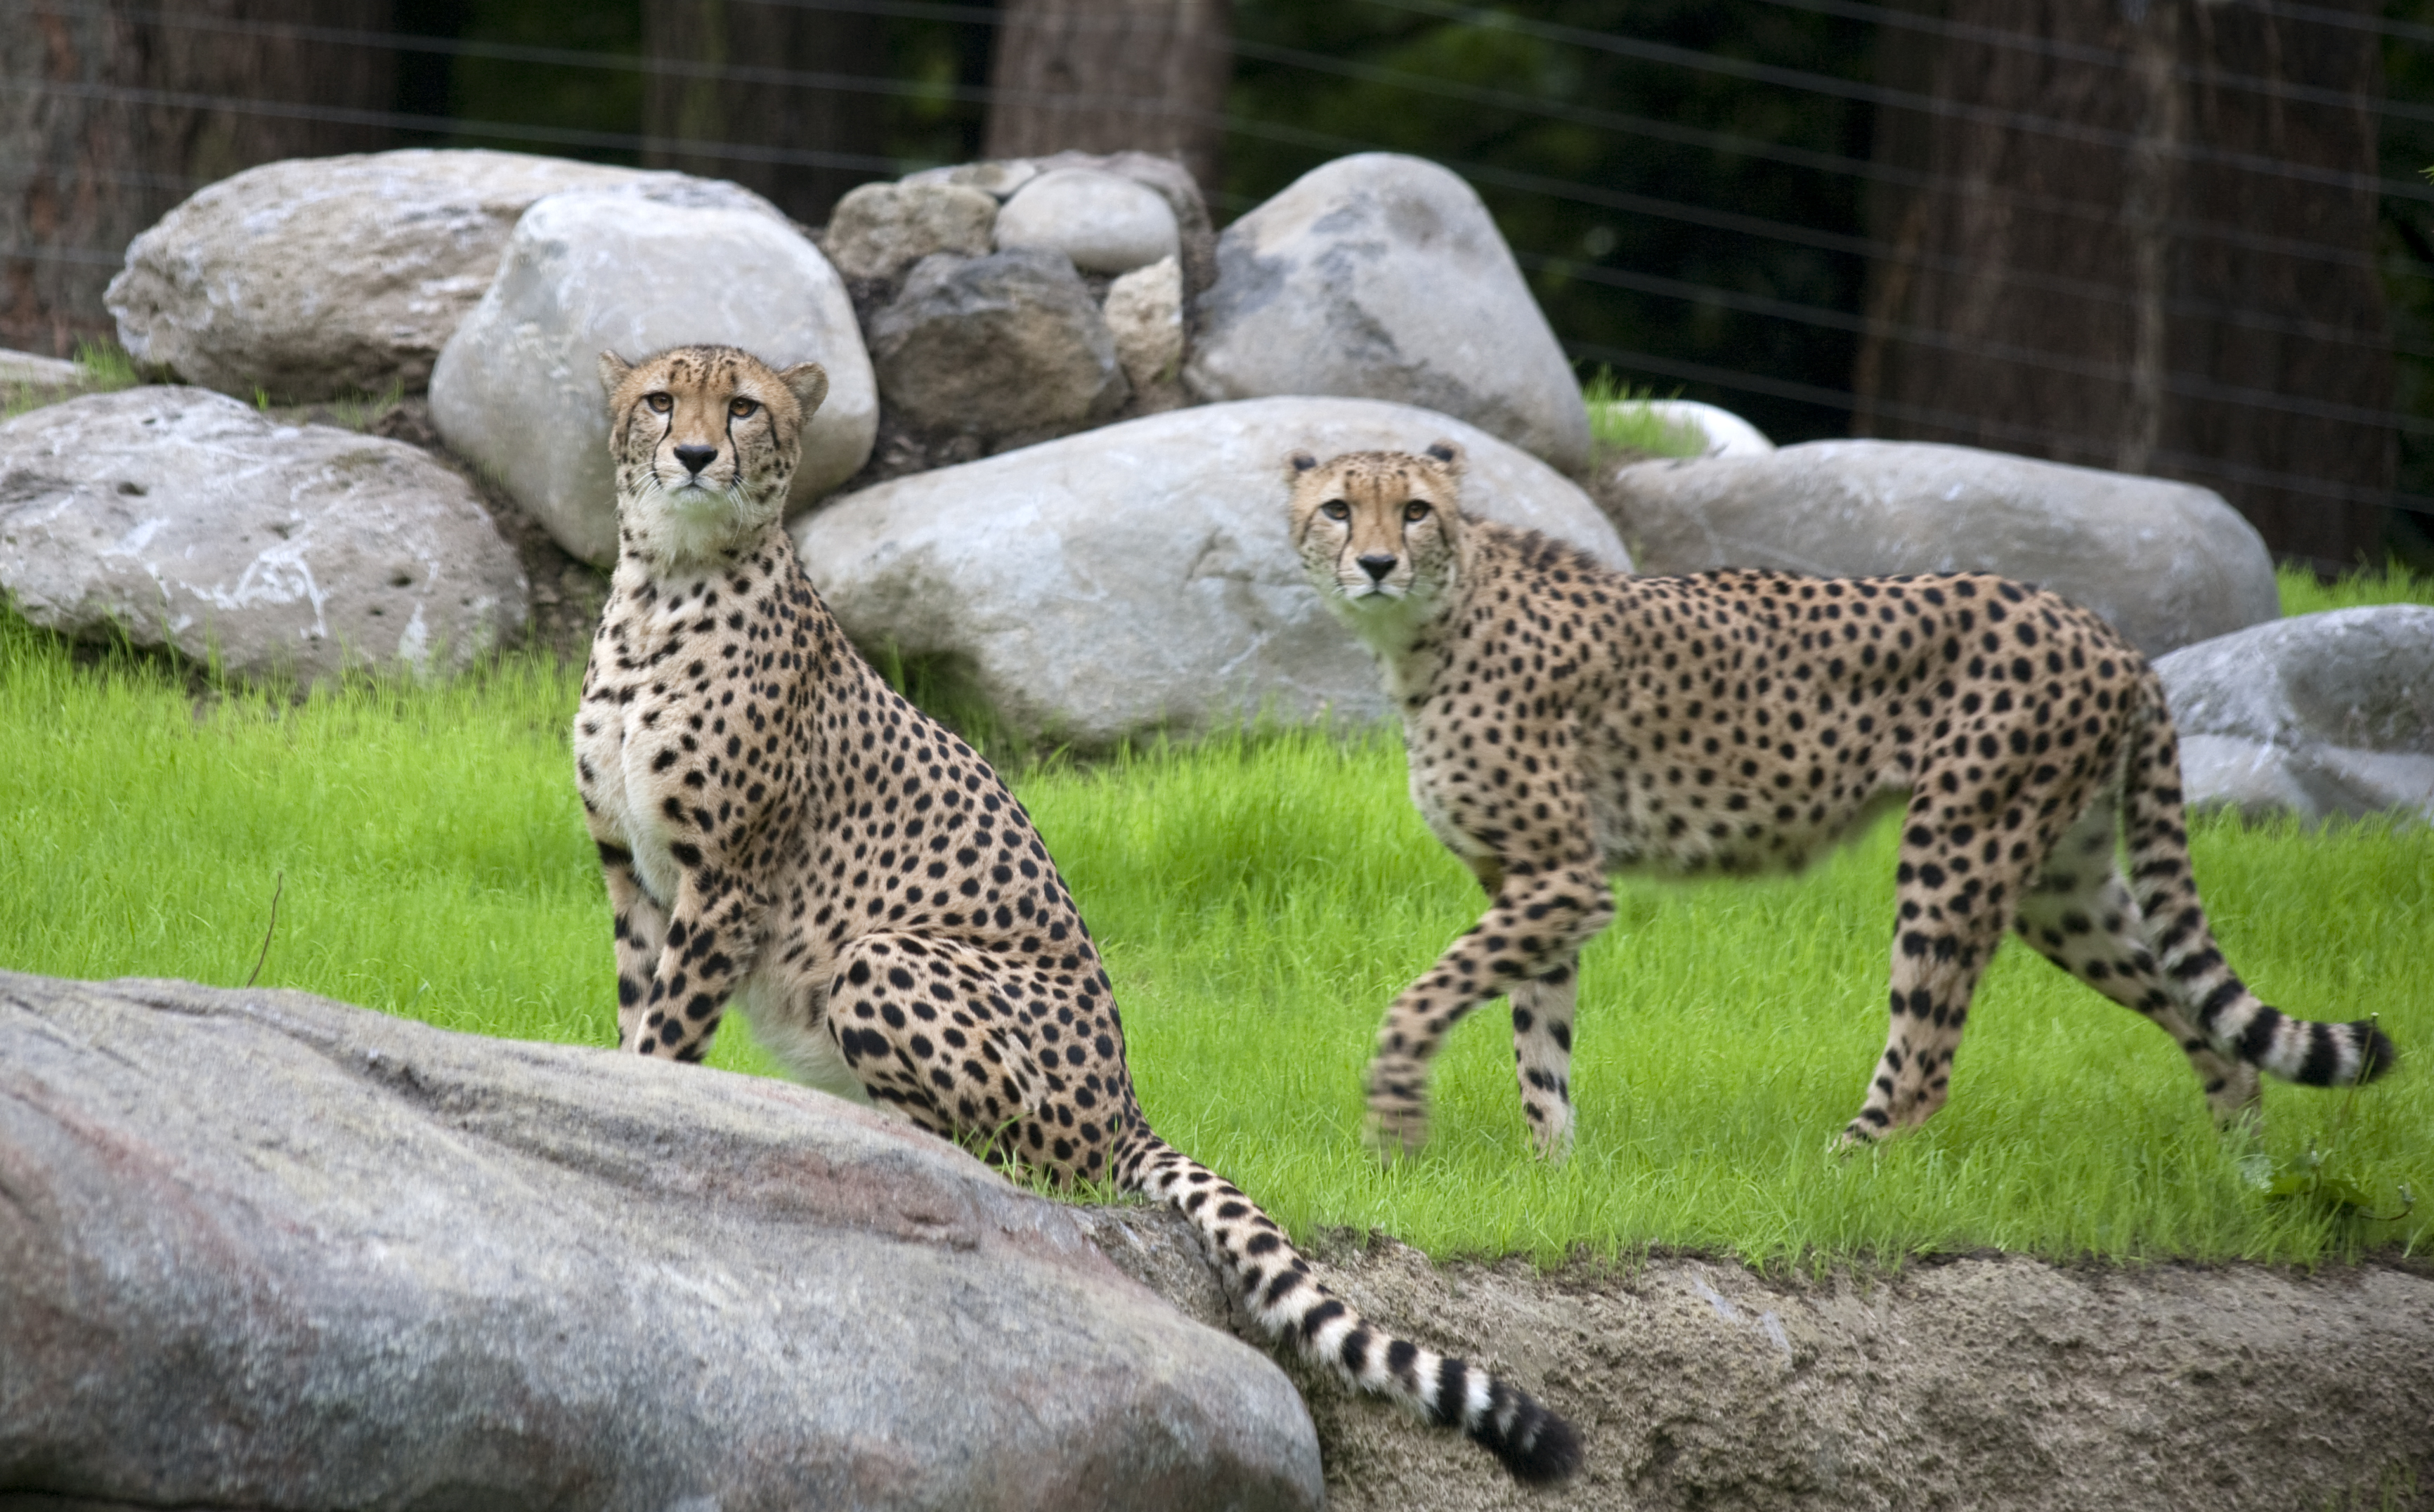 cheetahs in zoos The keeping of wild animals as pets is a growing concern the widespread use of the internet has made it easier than ever to 'order' or purchase a wild animal without clarification as to where it has come from or how it should be cared for.